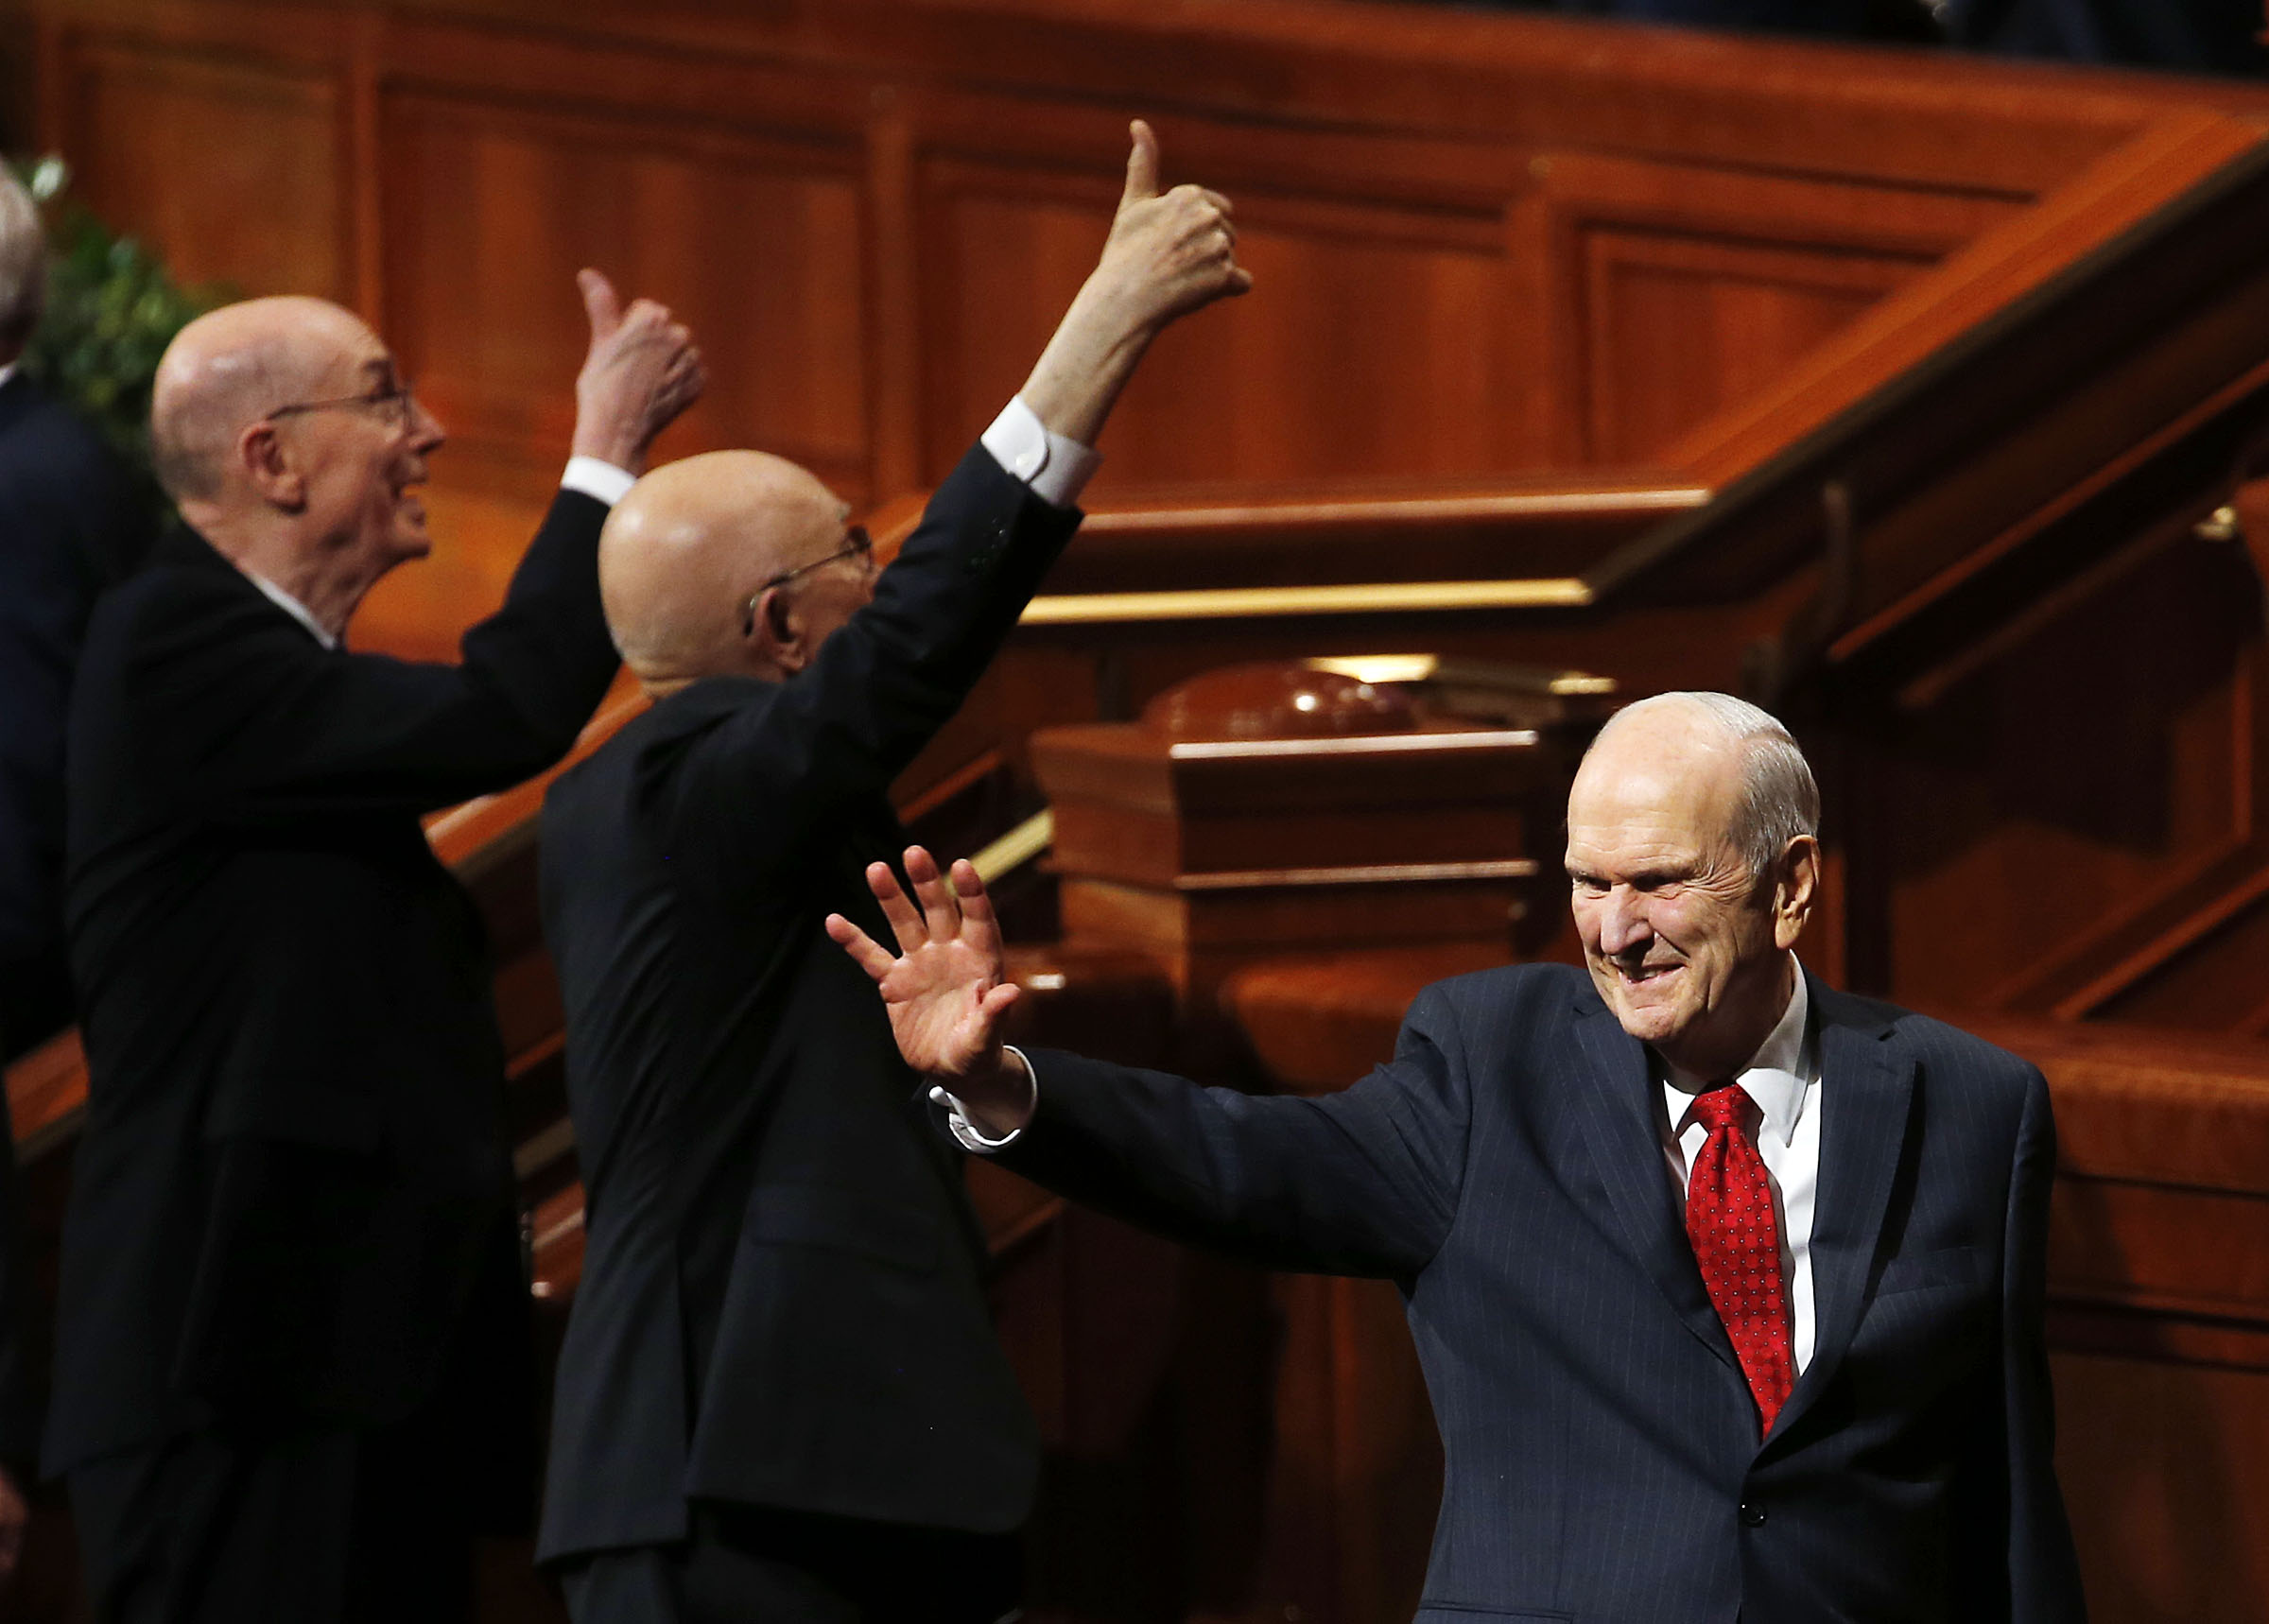 President Russell M. Nelson of The Church of Jesus Christ of Latter-day Saints, right, waves as he and his counselors, President Dallin H. Oaks, first counselor in the First Presidency, and President Henry B. Eyring, second counselor in the First Presidency, leave the Conference Center following the priesthood session of the 189th Annual General Conference in Salt Lake City on Saturday, April 6, 2019.